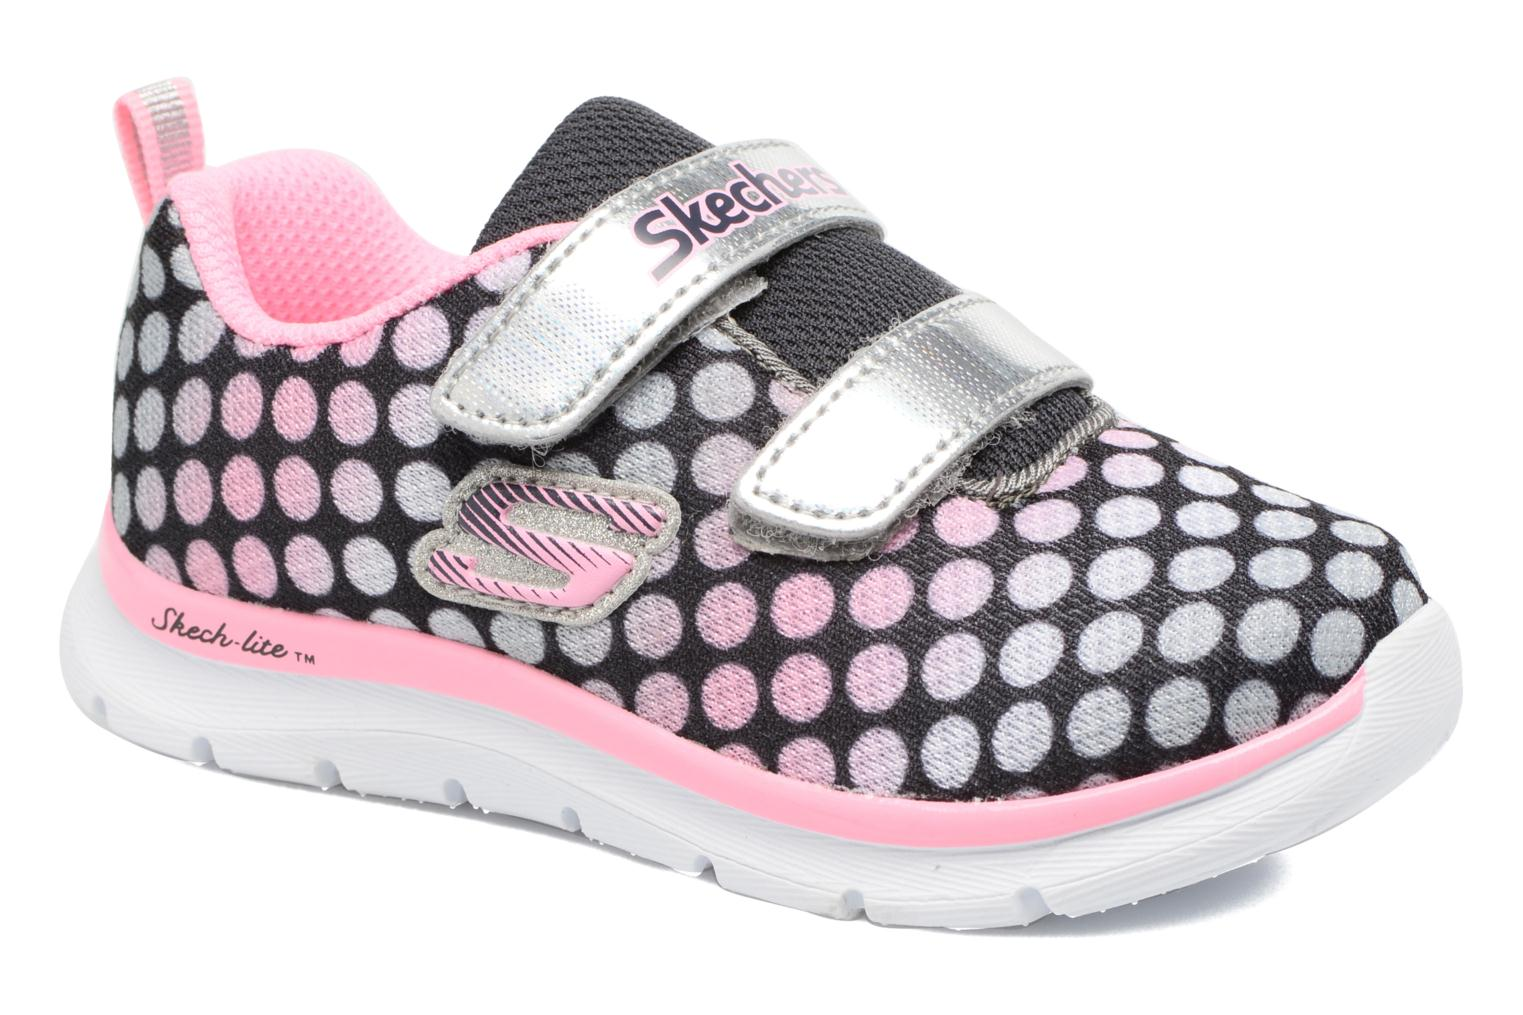 Baskets Skechers Skech-Lite Lil'Dots Multicolore vue détail/paire